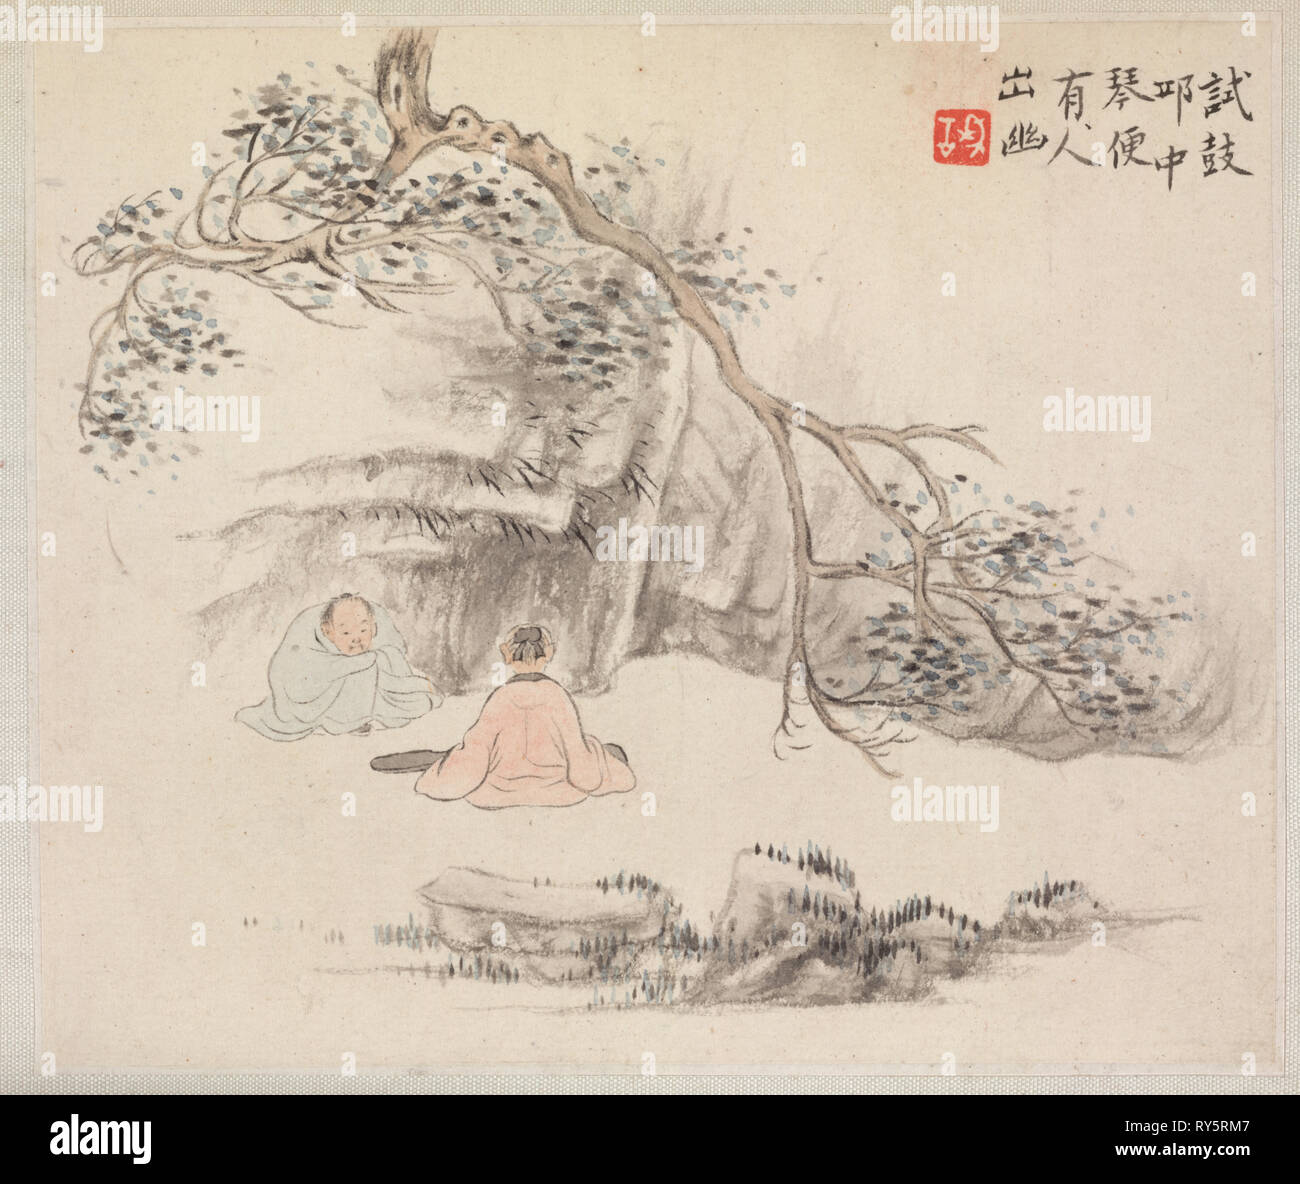 Album of Landscape Paintings Illustrating Old Poems: Two Figures Outside: One Listens while the Other Plays the Qin, 1700s. Hua Yan (Chinese, 1682-about 1765). Album leaf, ink and light color on paper; image: 11.2 x 13.1 cm (4 7/16 x 5 3/16 in.); album, closed: 15 x 18.5 cm (5 7/8 x 7 5/16 in - Stock Image